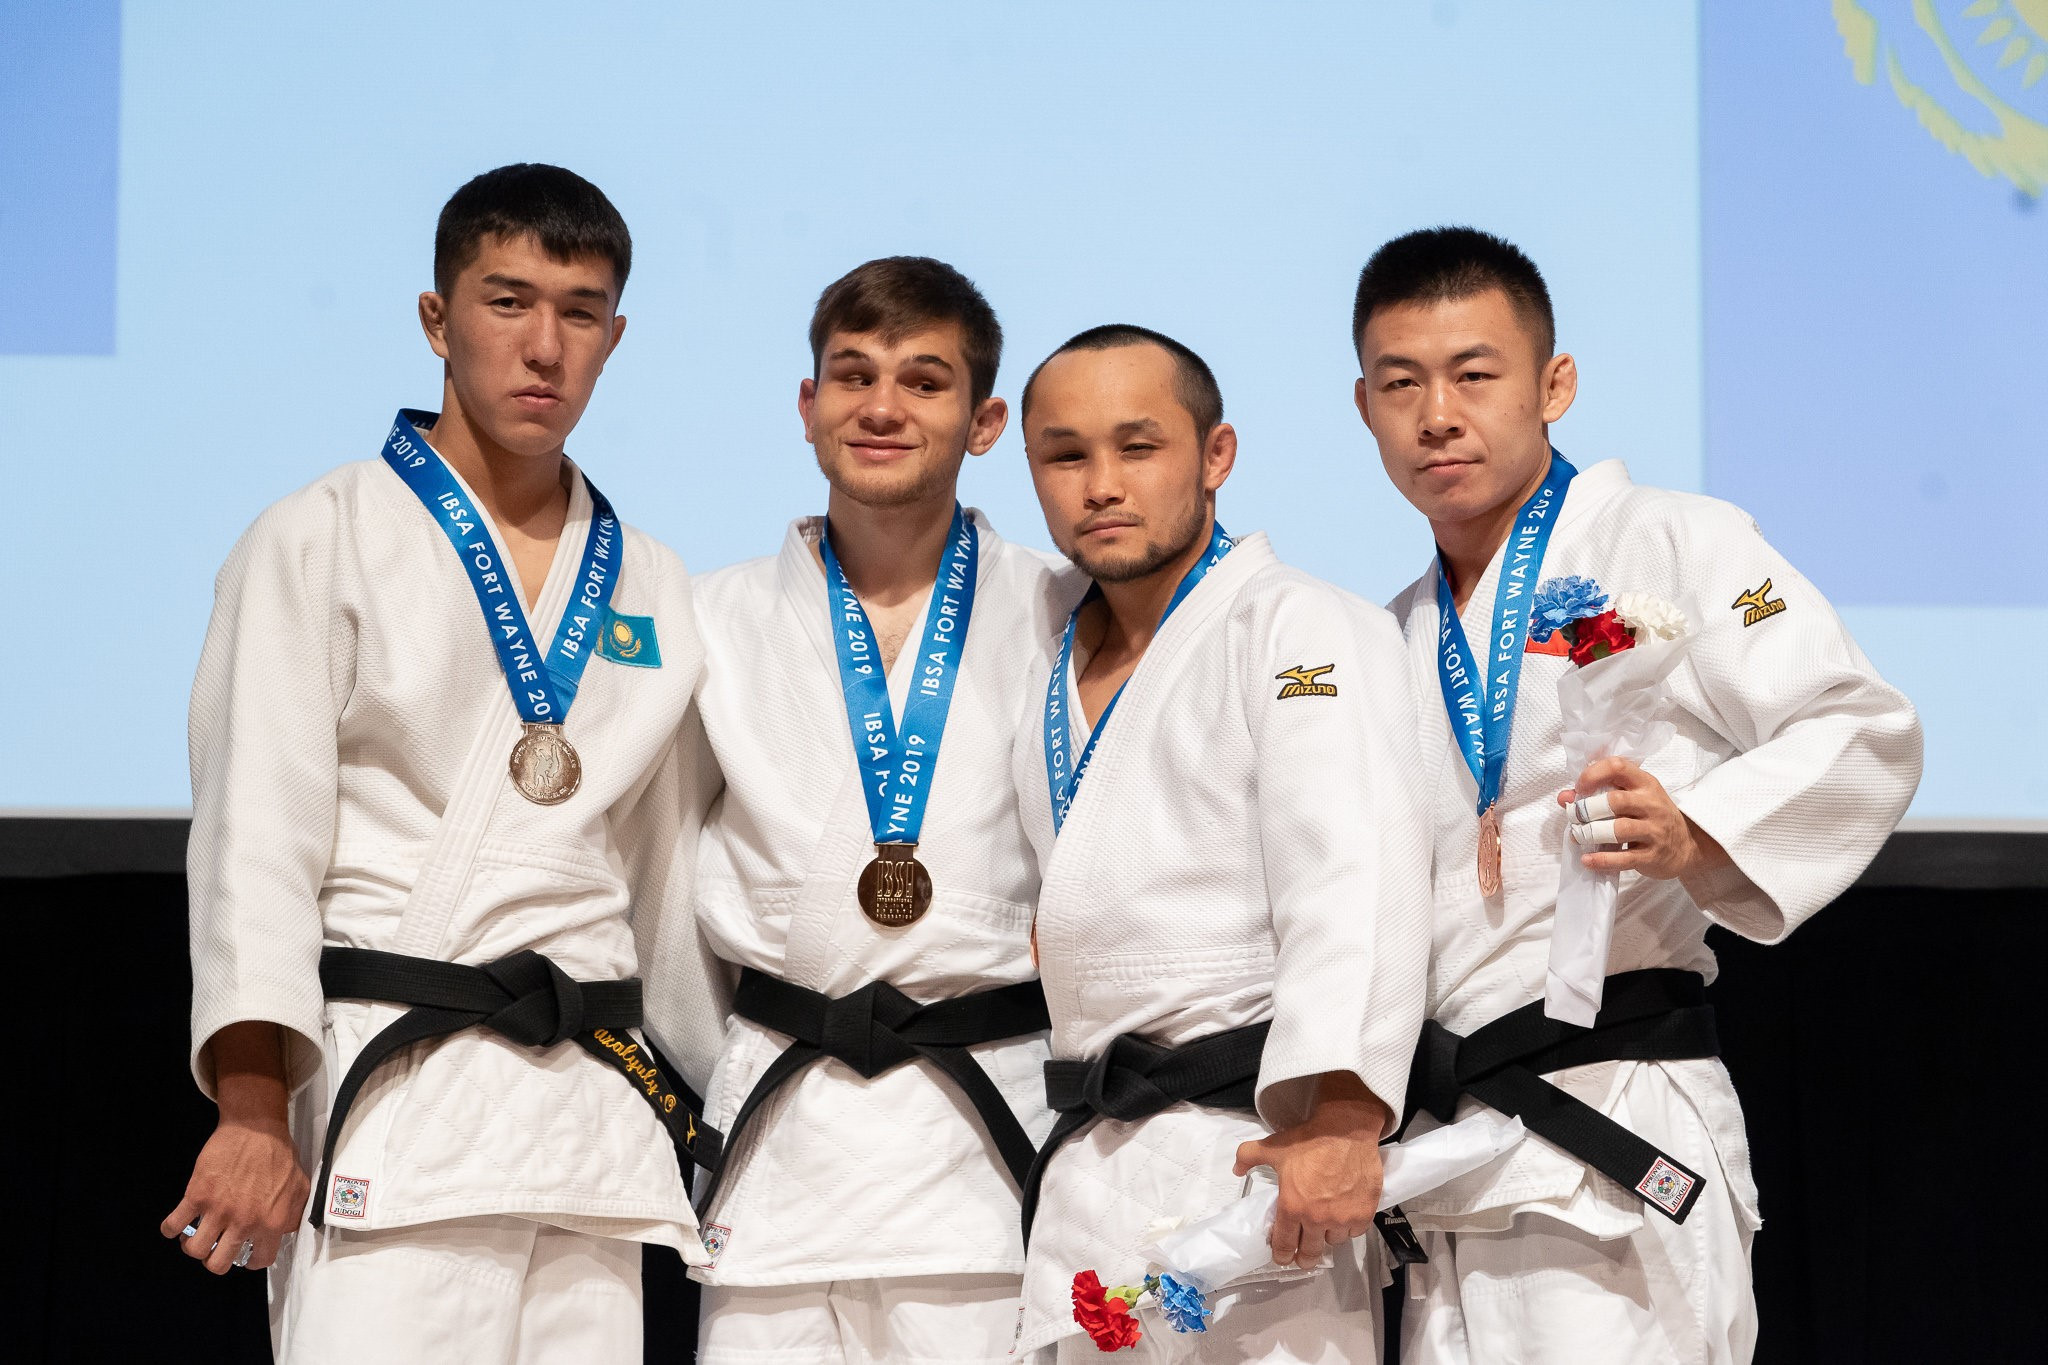 Romania's Bologa among winners as IBSA Judo International Qualifier for Tokyo 2020 begins